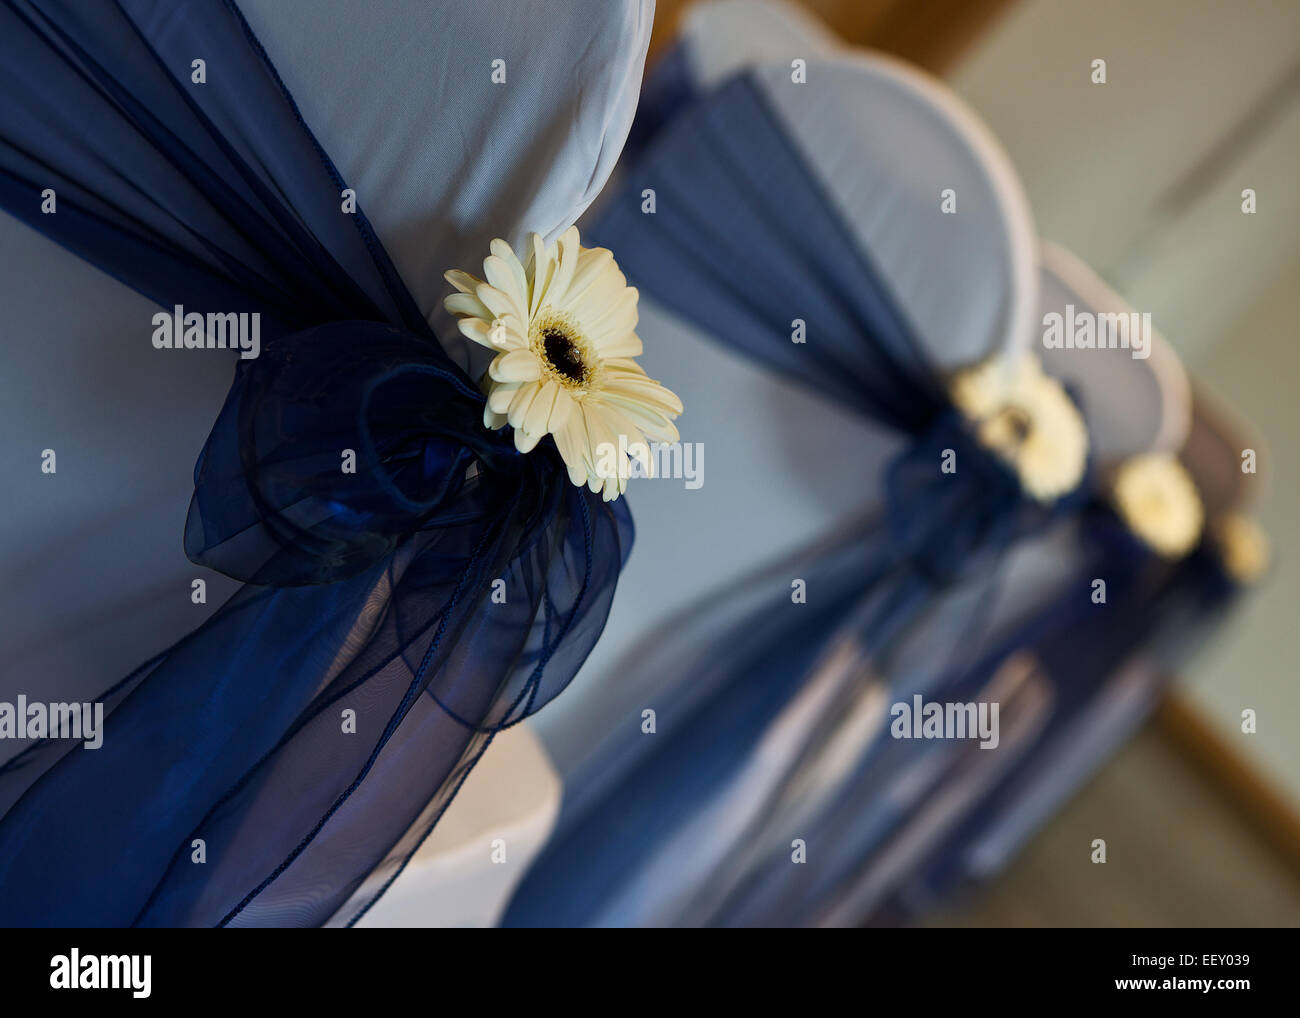 flowers and bows for a wedding - Stock Image